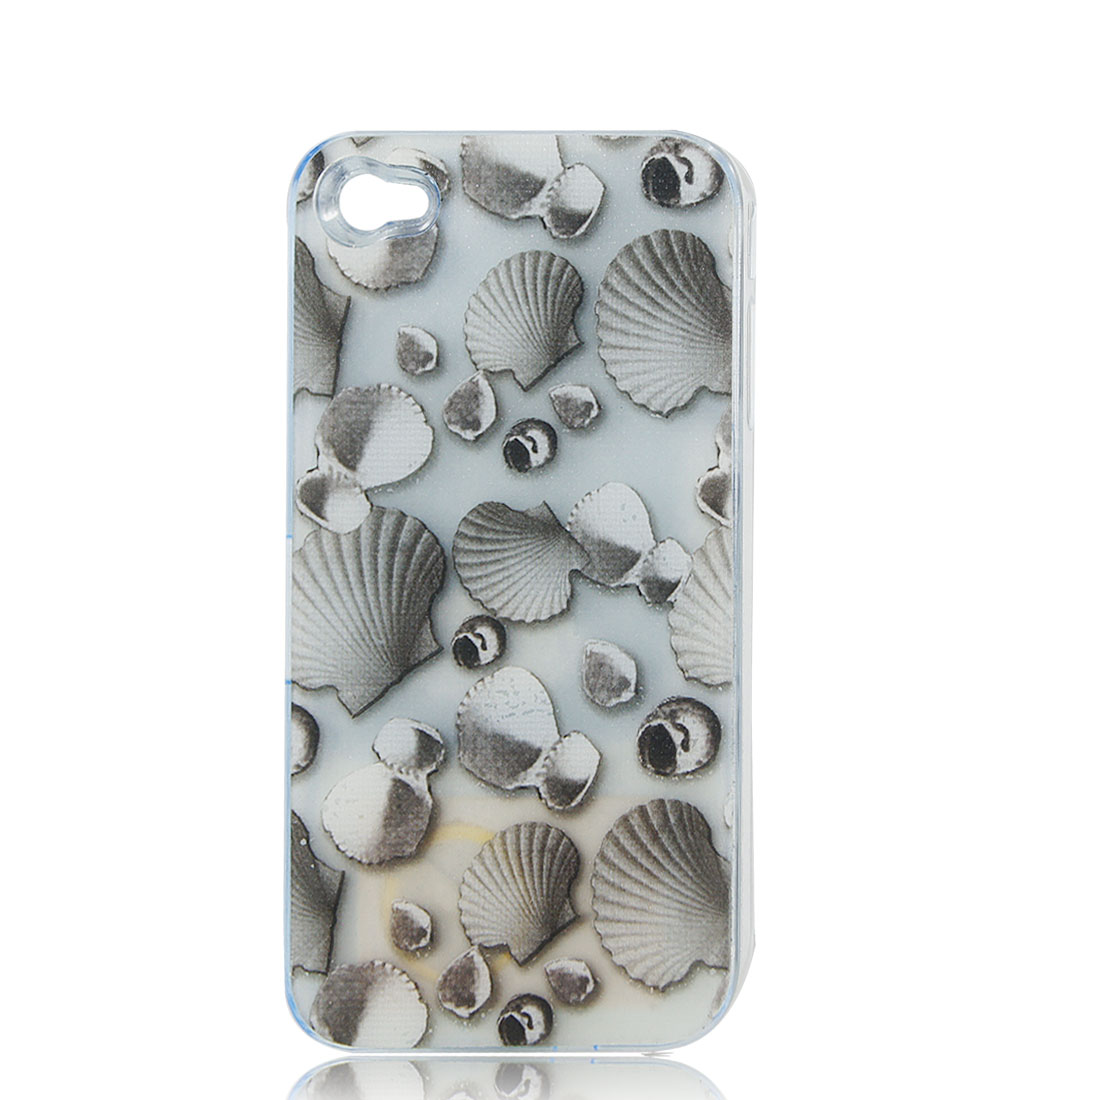 Gray Sea Shell Print Sense Flash Light LED Color Changed Hard Back Case Cover for iPhone 4 4S